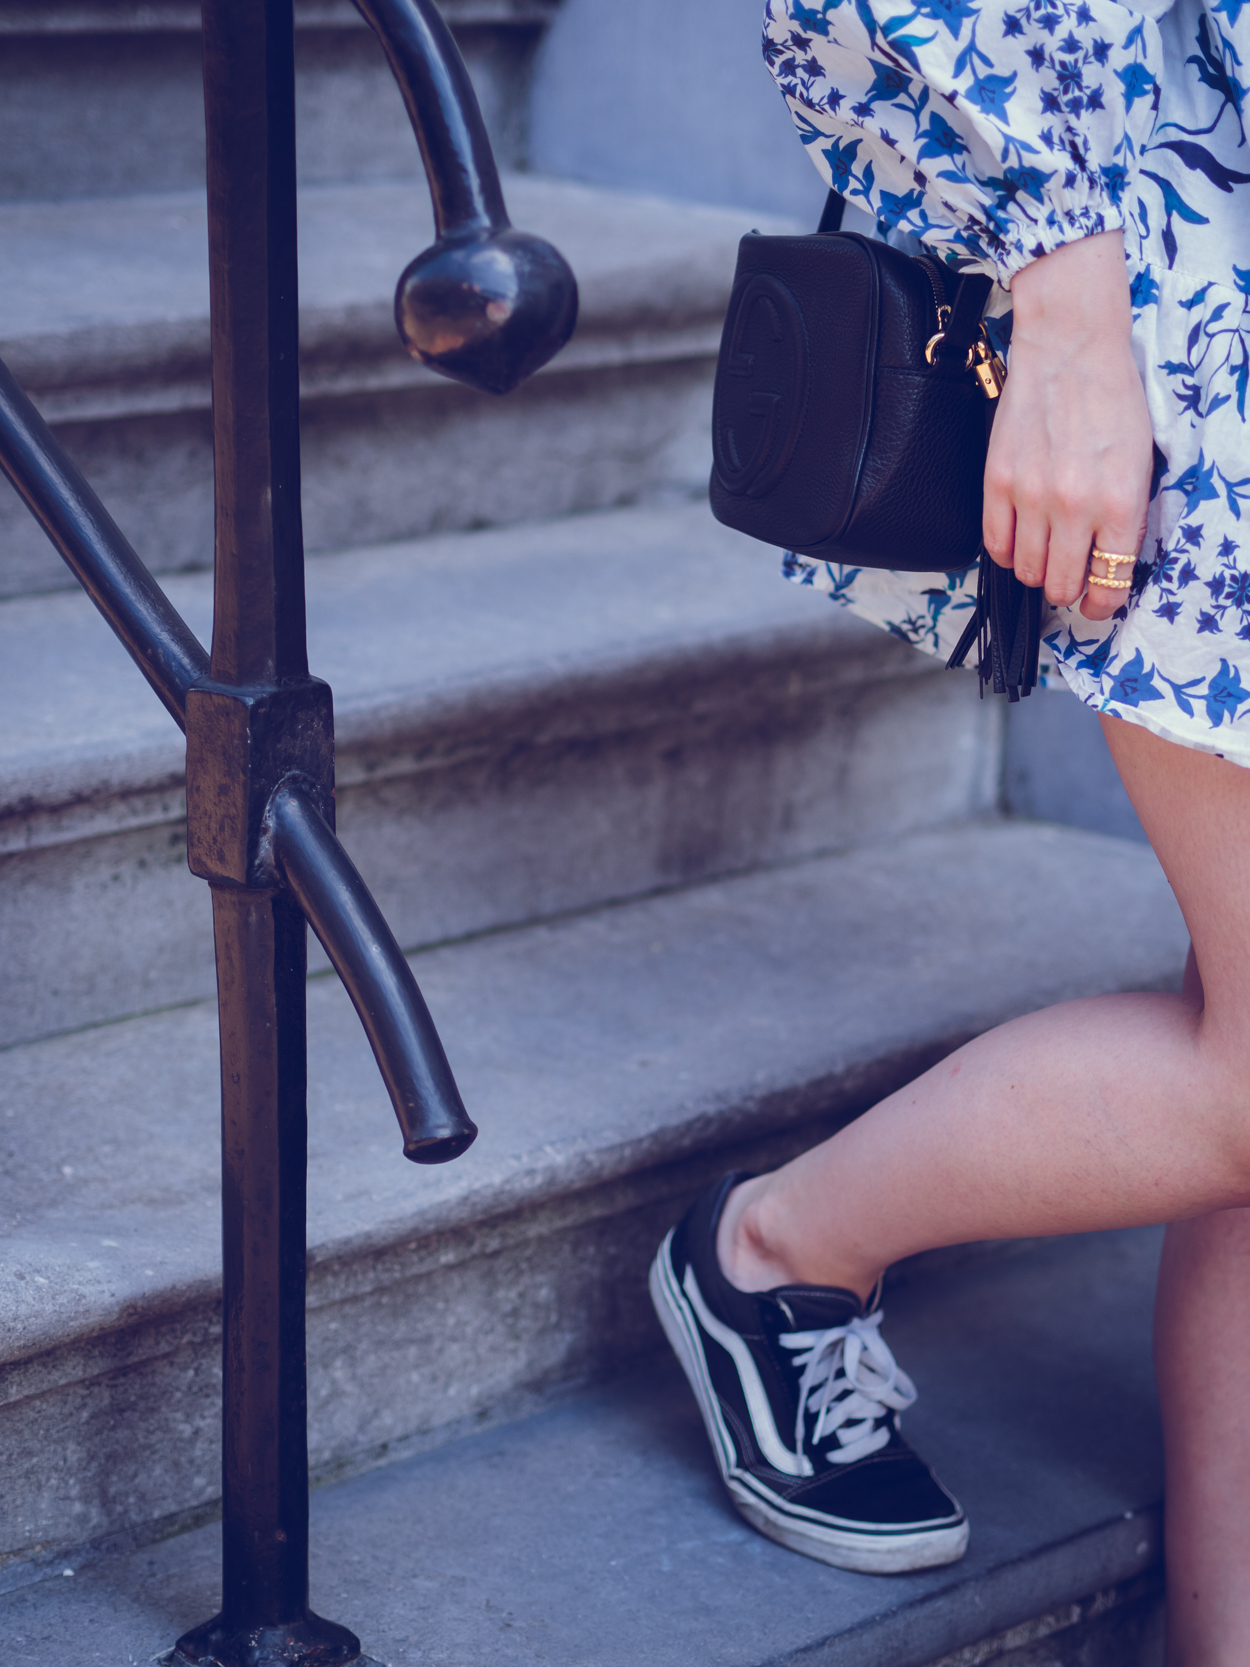 THE 7 SUMMER WARDROBE ITEMS TO PACK FOR YOUR NEXT HOLIDAY   THE CHIC ITALIAN   The summer wardrobe items to take with you when you are packing list for your next trip